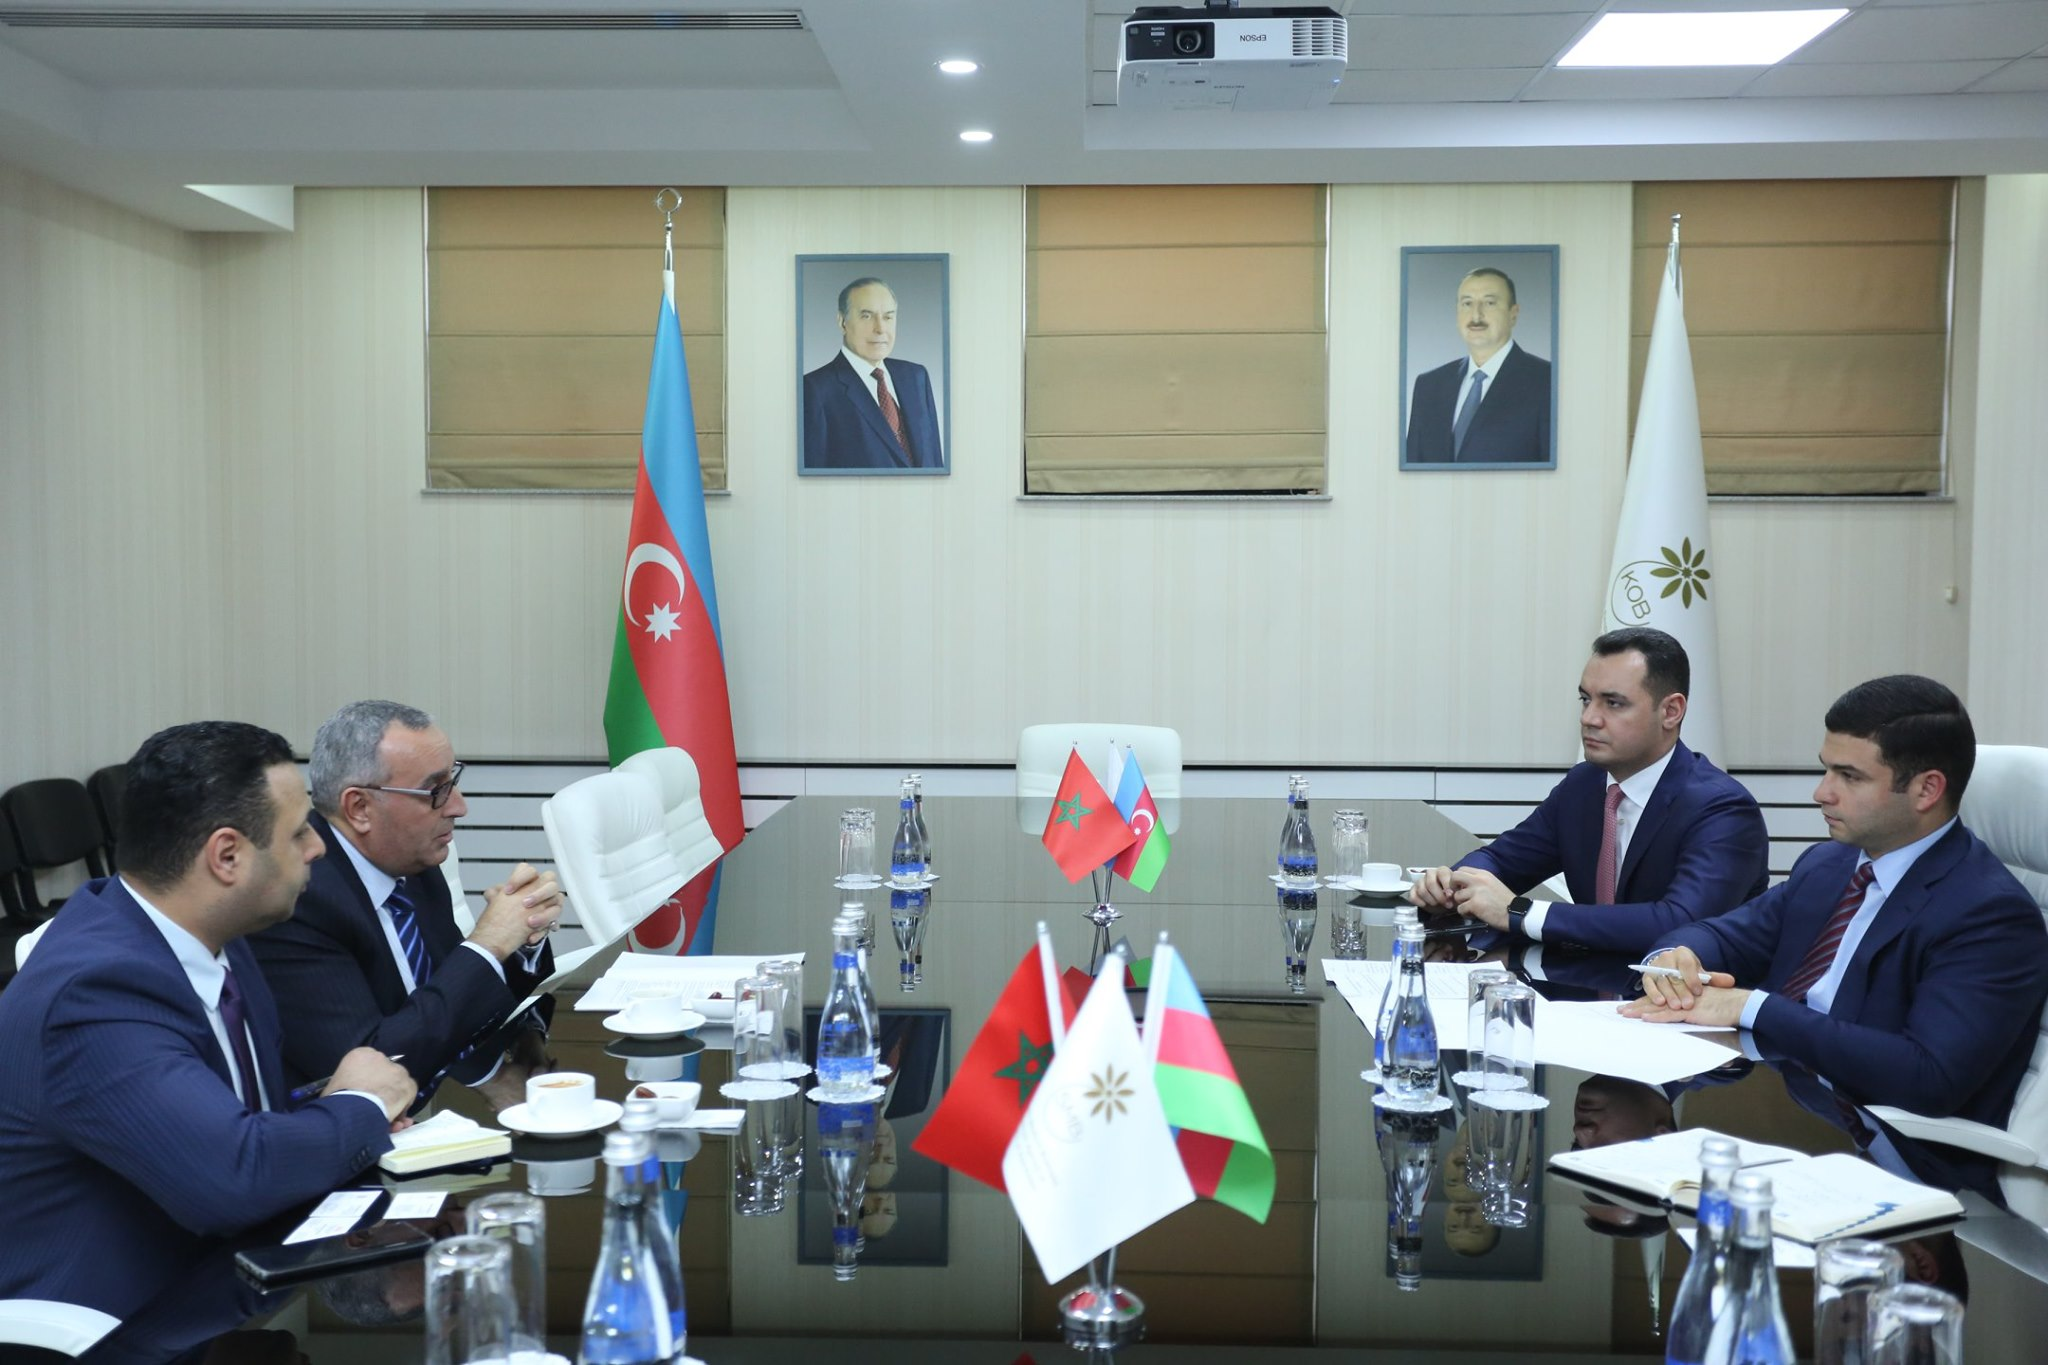 Morocco is interested to partner with our country in the field of SMB